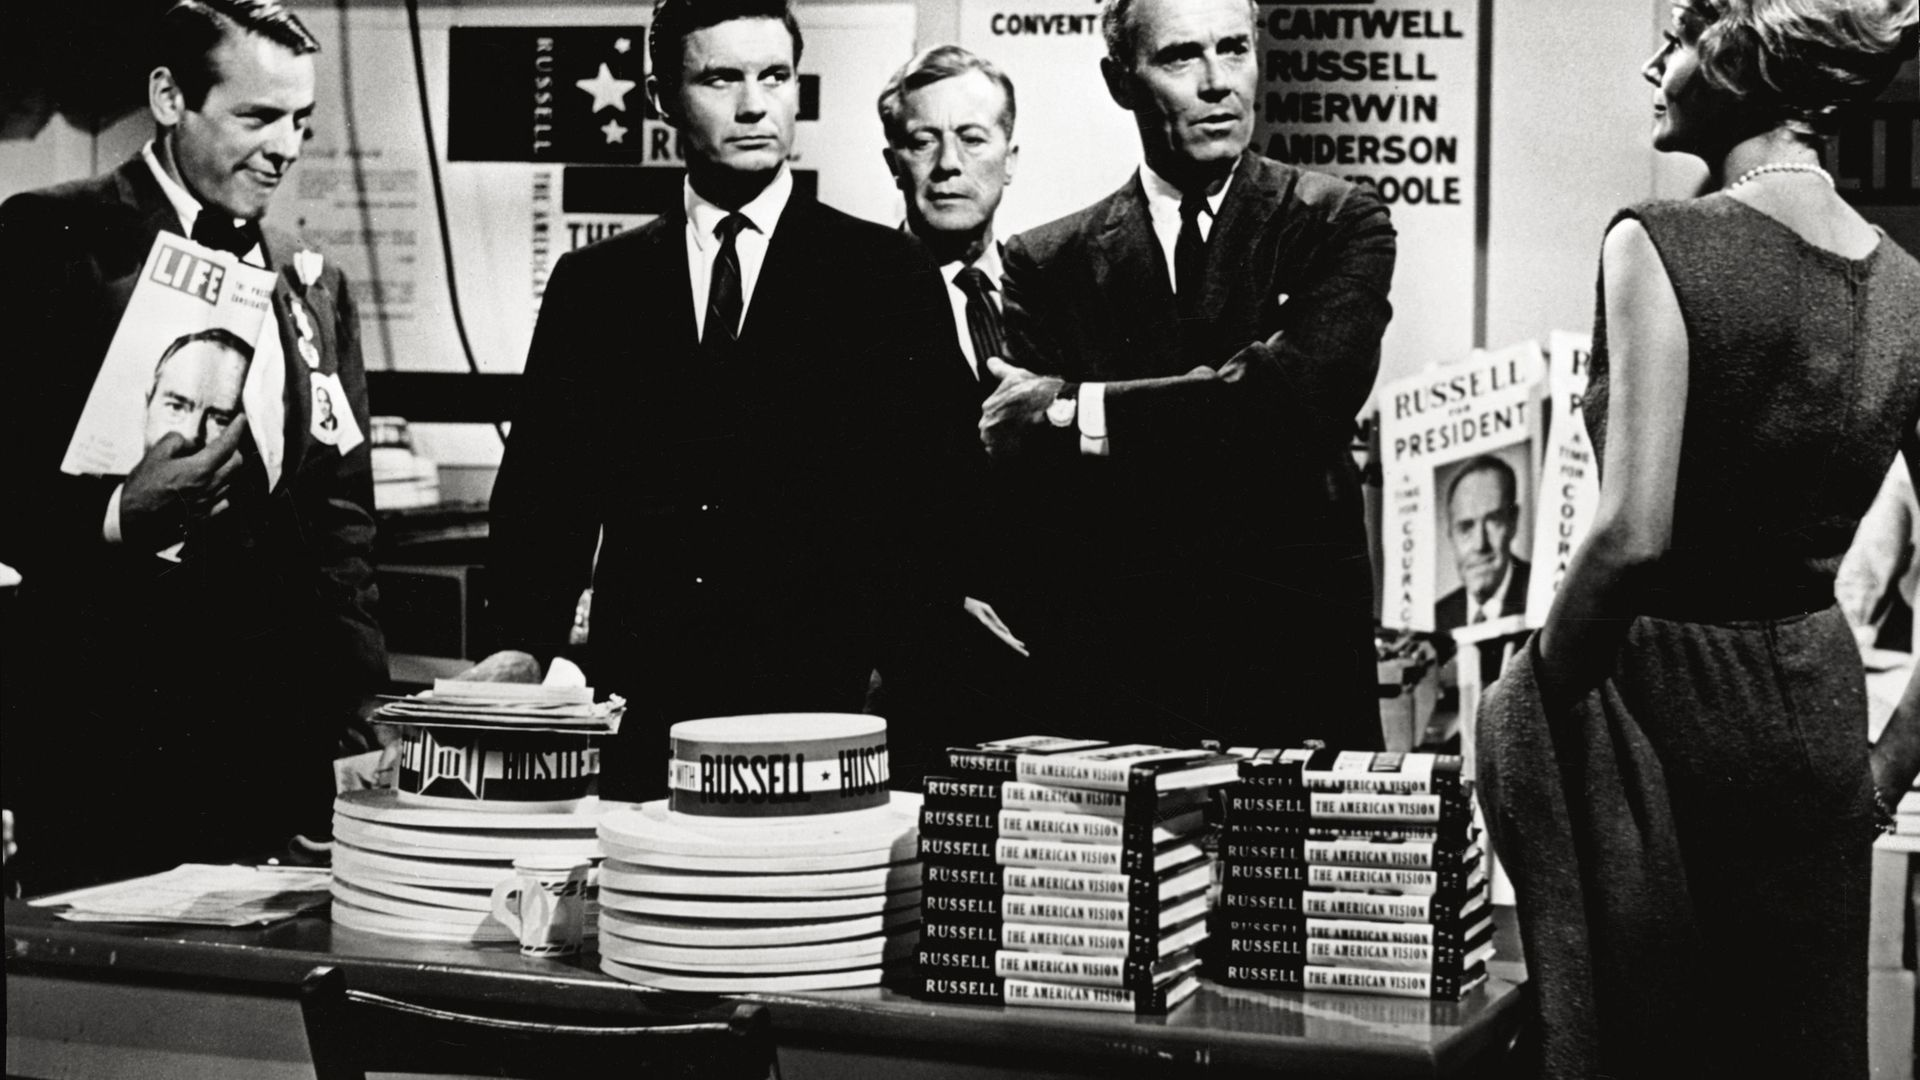 Cliff Robertson (the second from the left) and Henry Fonda (with his arms folded) play the role of two politicians running for the Presidency of the United States in the film 'The Best Man' - Credit: Mondadori via Getty Images